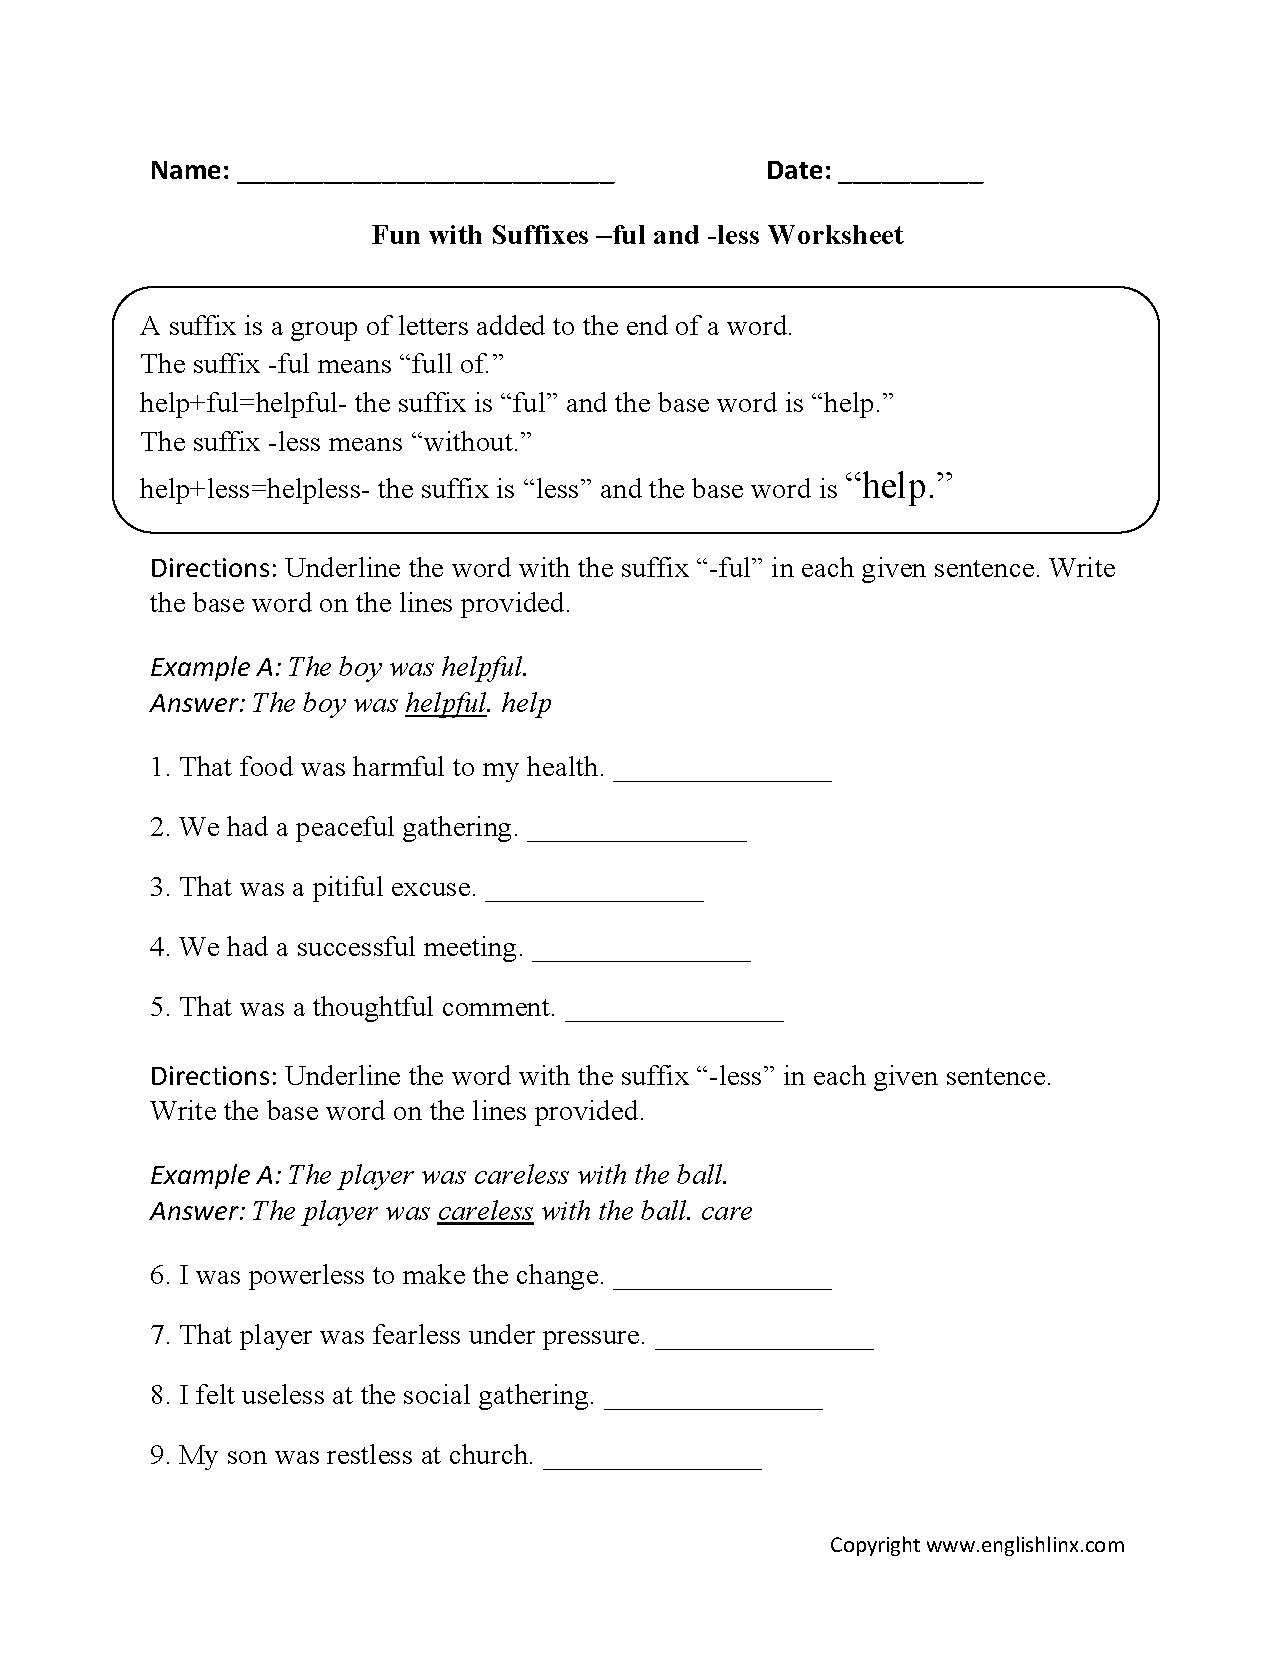 Fun With Suffixes Ful And Less Worksheets